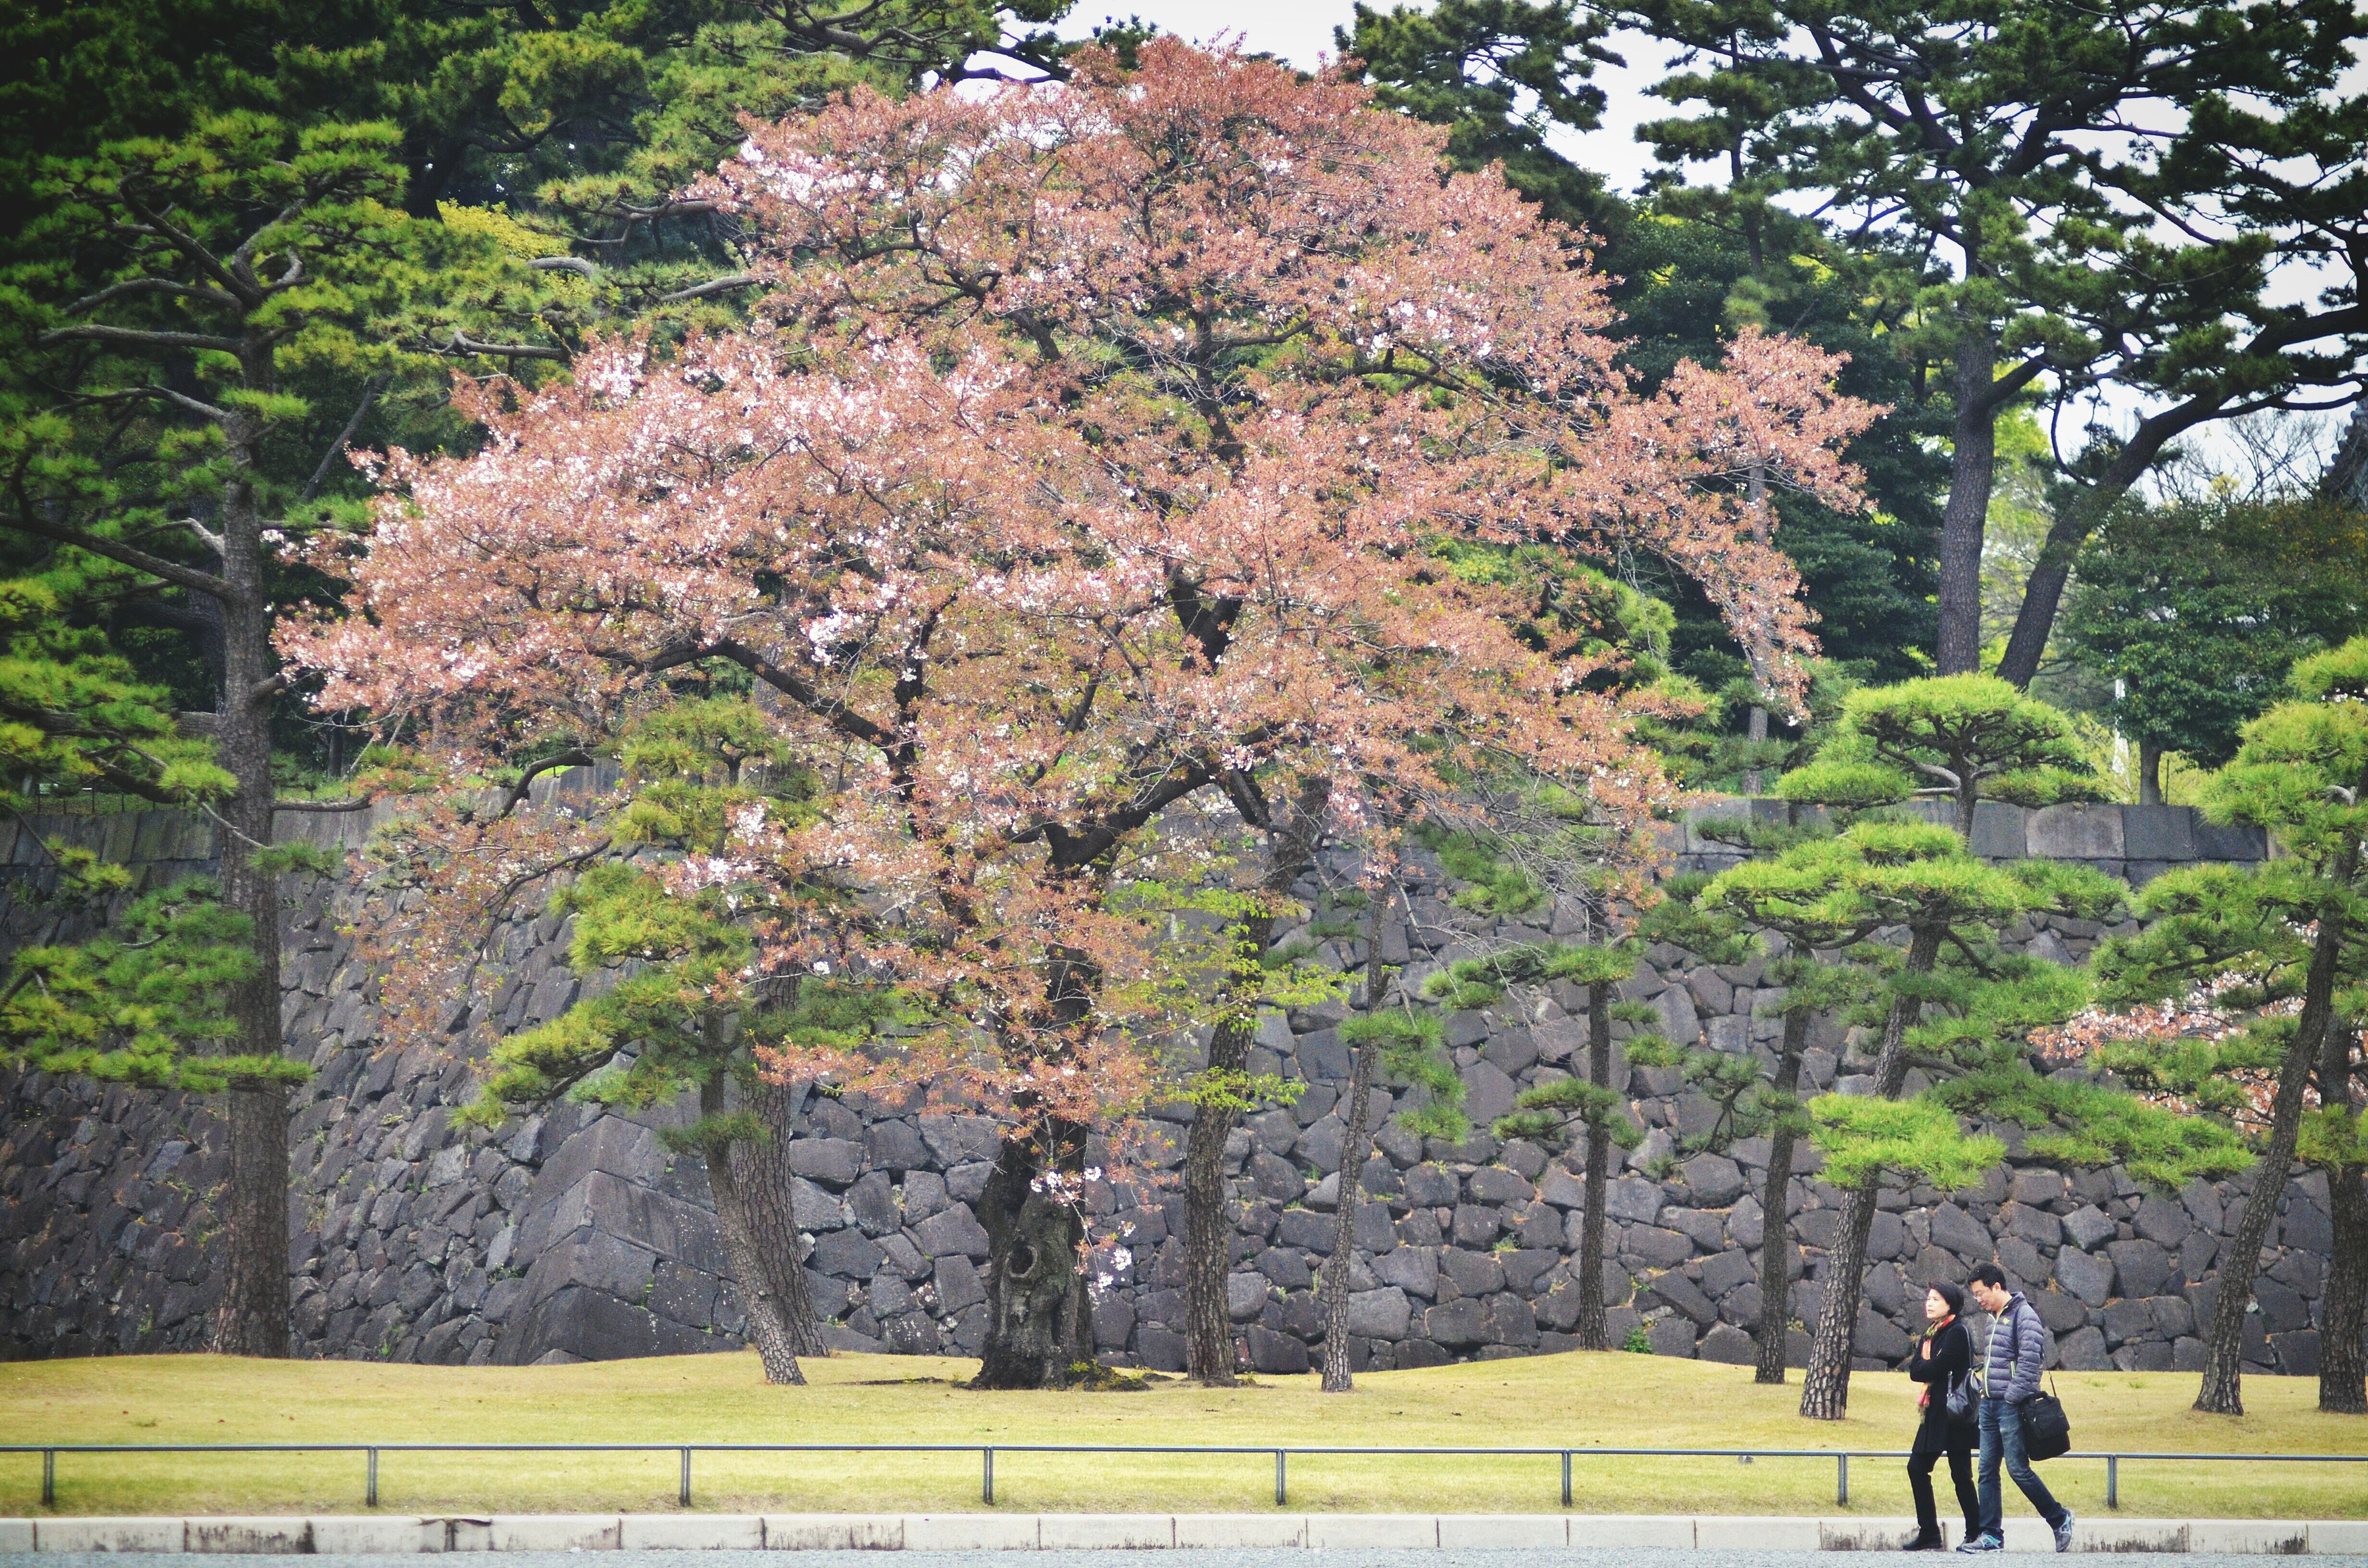 tree, lifestyles, leisure activity, men, growth, person, nature, walking, beauty in nature, branch, flower, full length, rear view, tranquility, park - man made space, tourist, tranquil scene